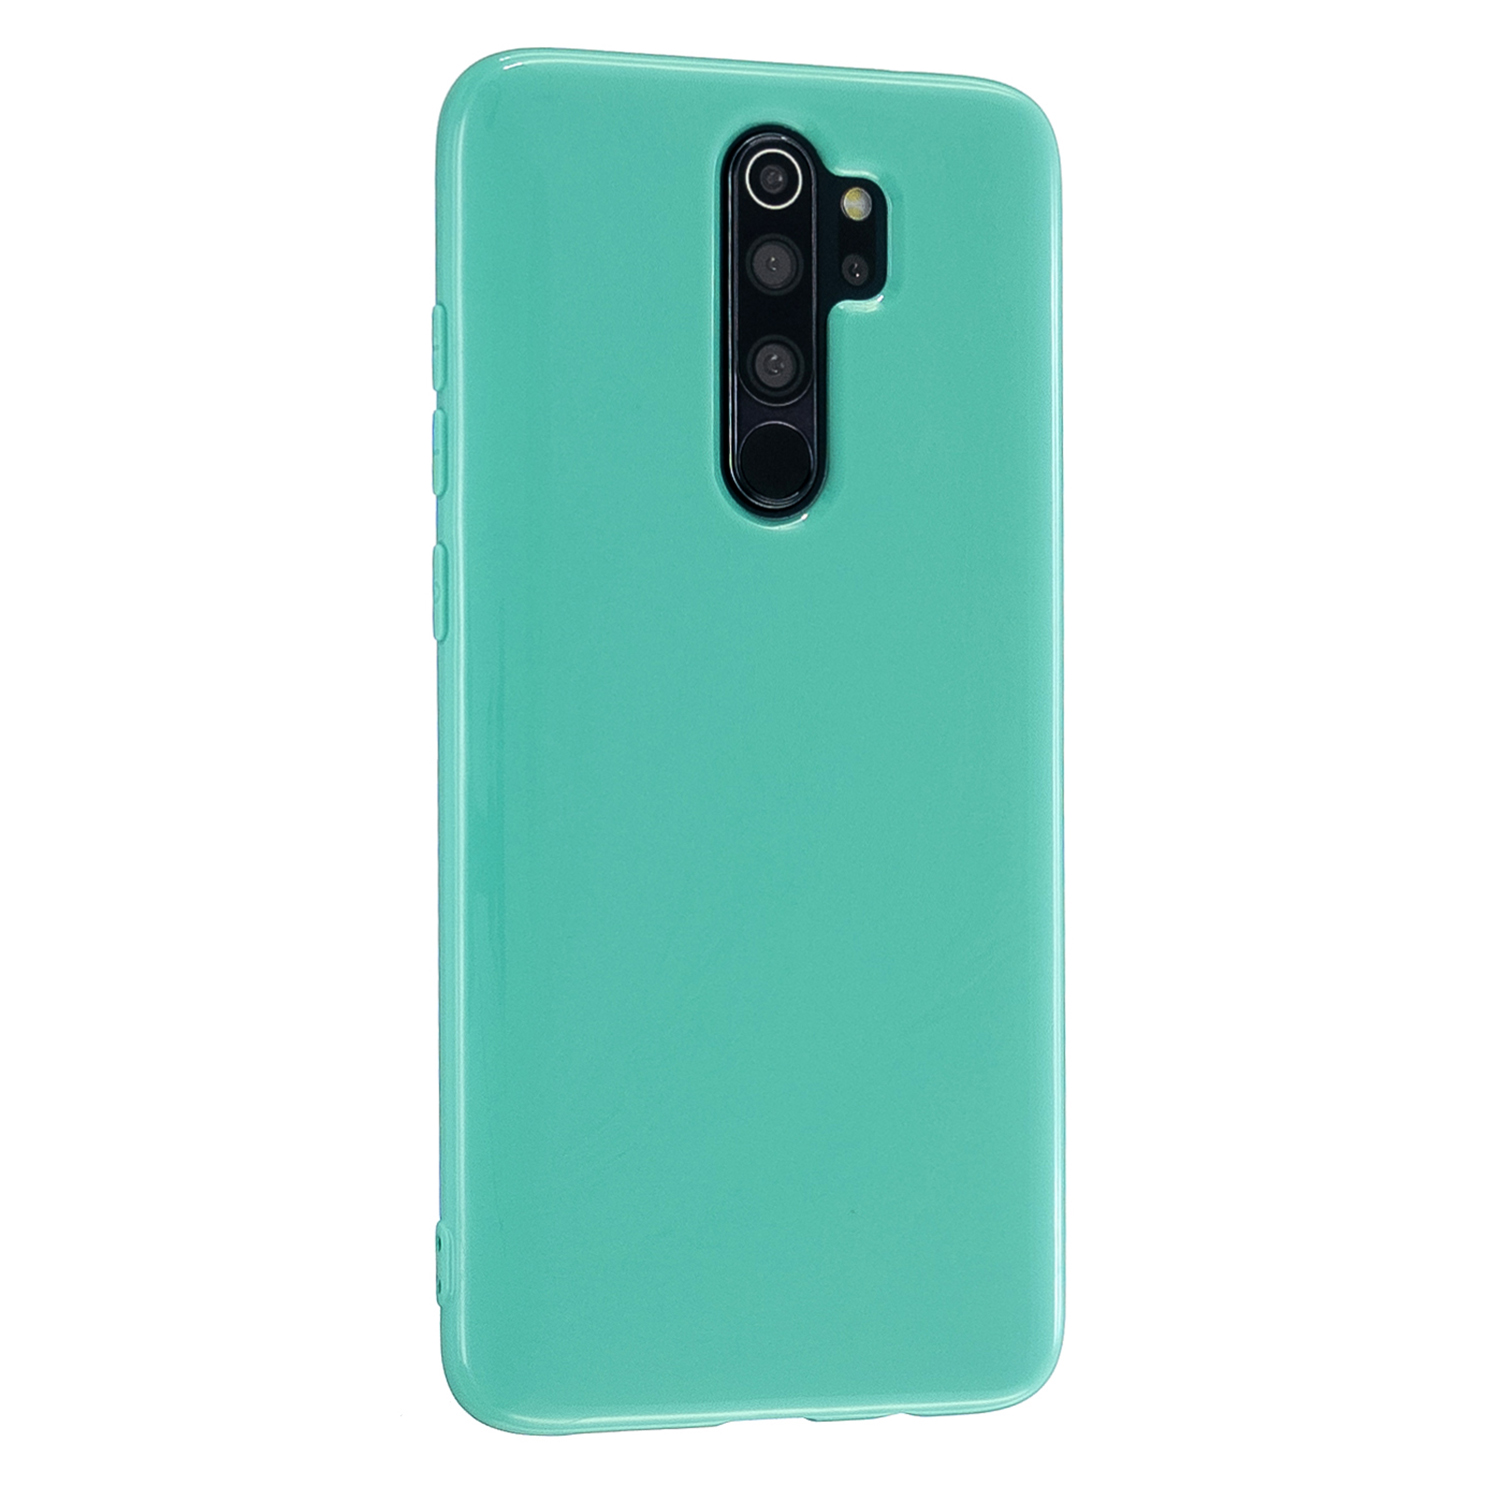 for VIVO Reno Ace/X2 PRO/ A9 2020/A5 2020 Thicken 2.0mm TPU Back Cover Cellphone Case Shell Light blue